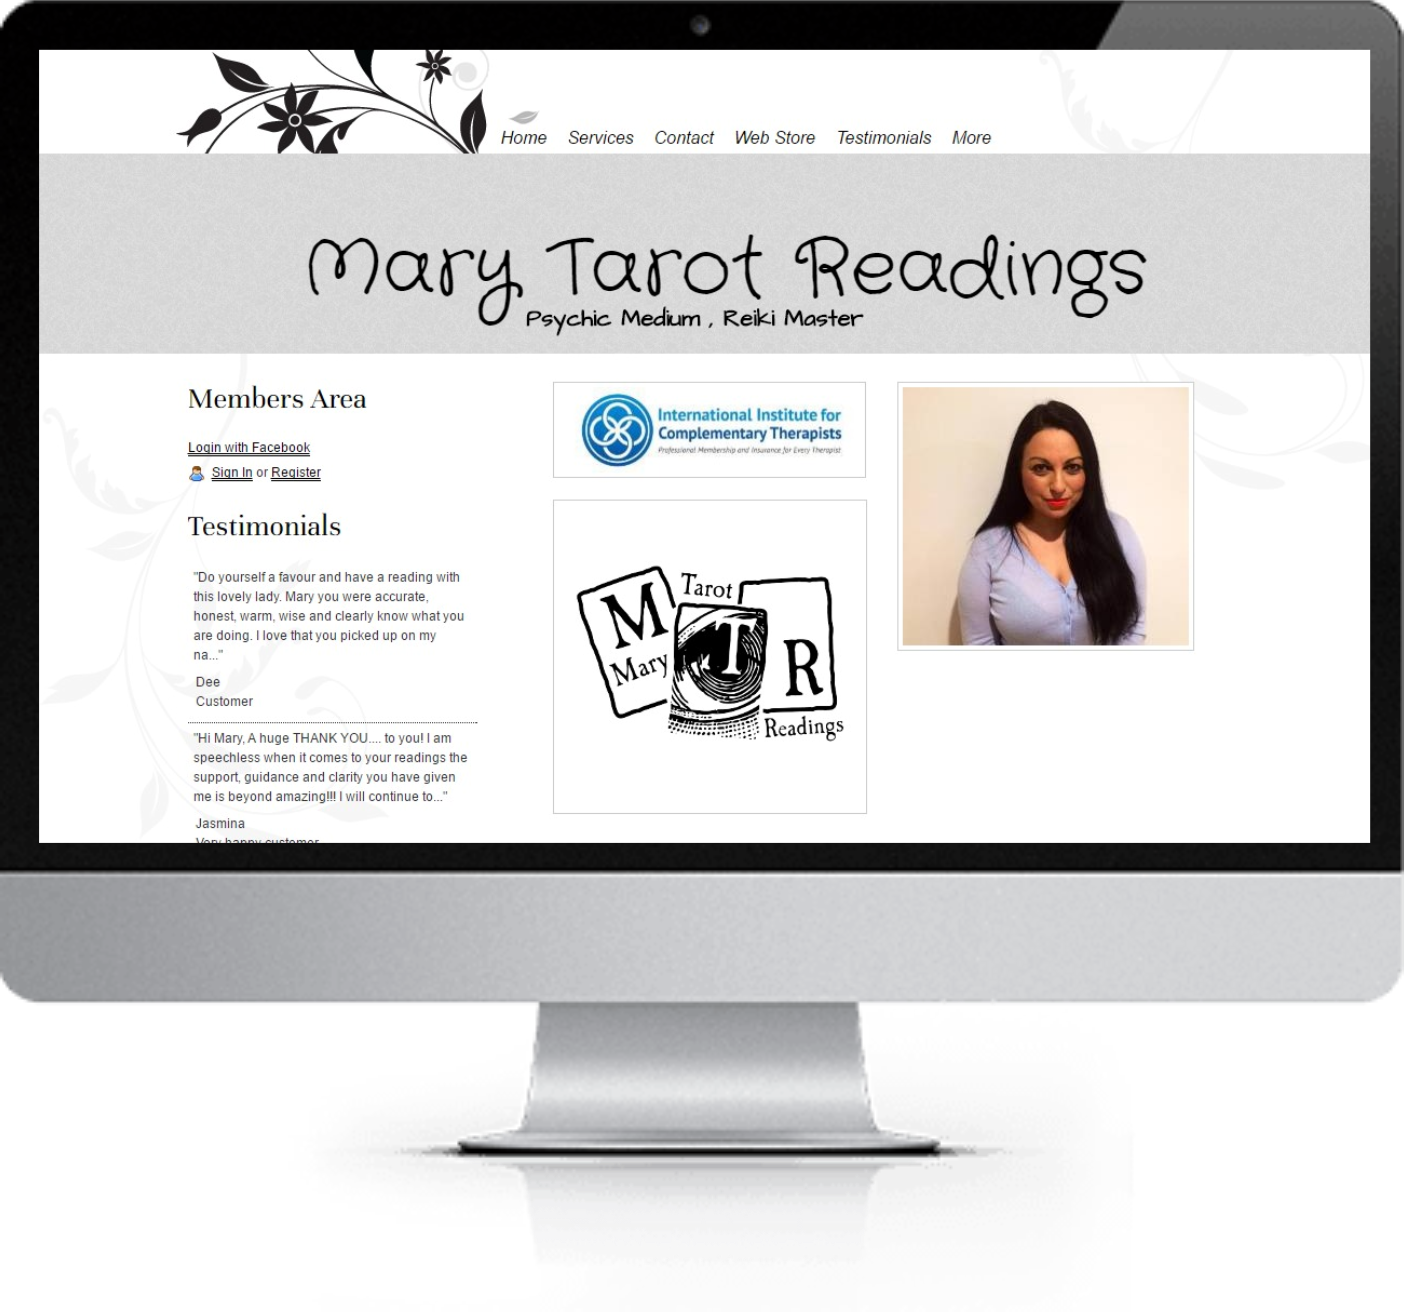 Website Redesign - Mary Tarot Readings - Before